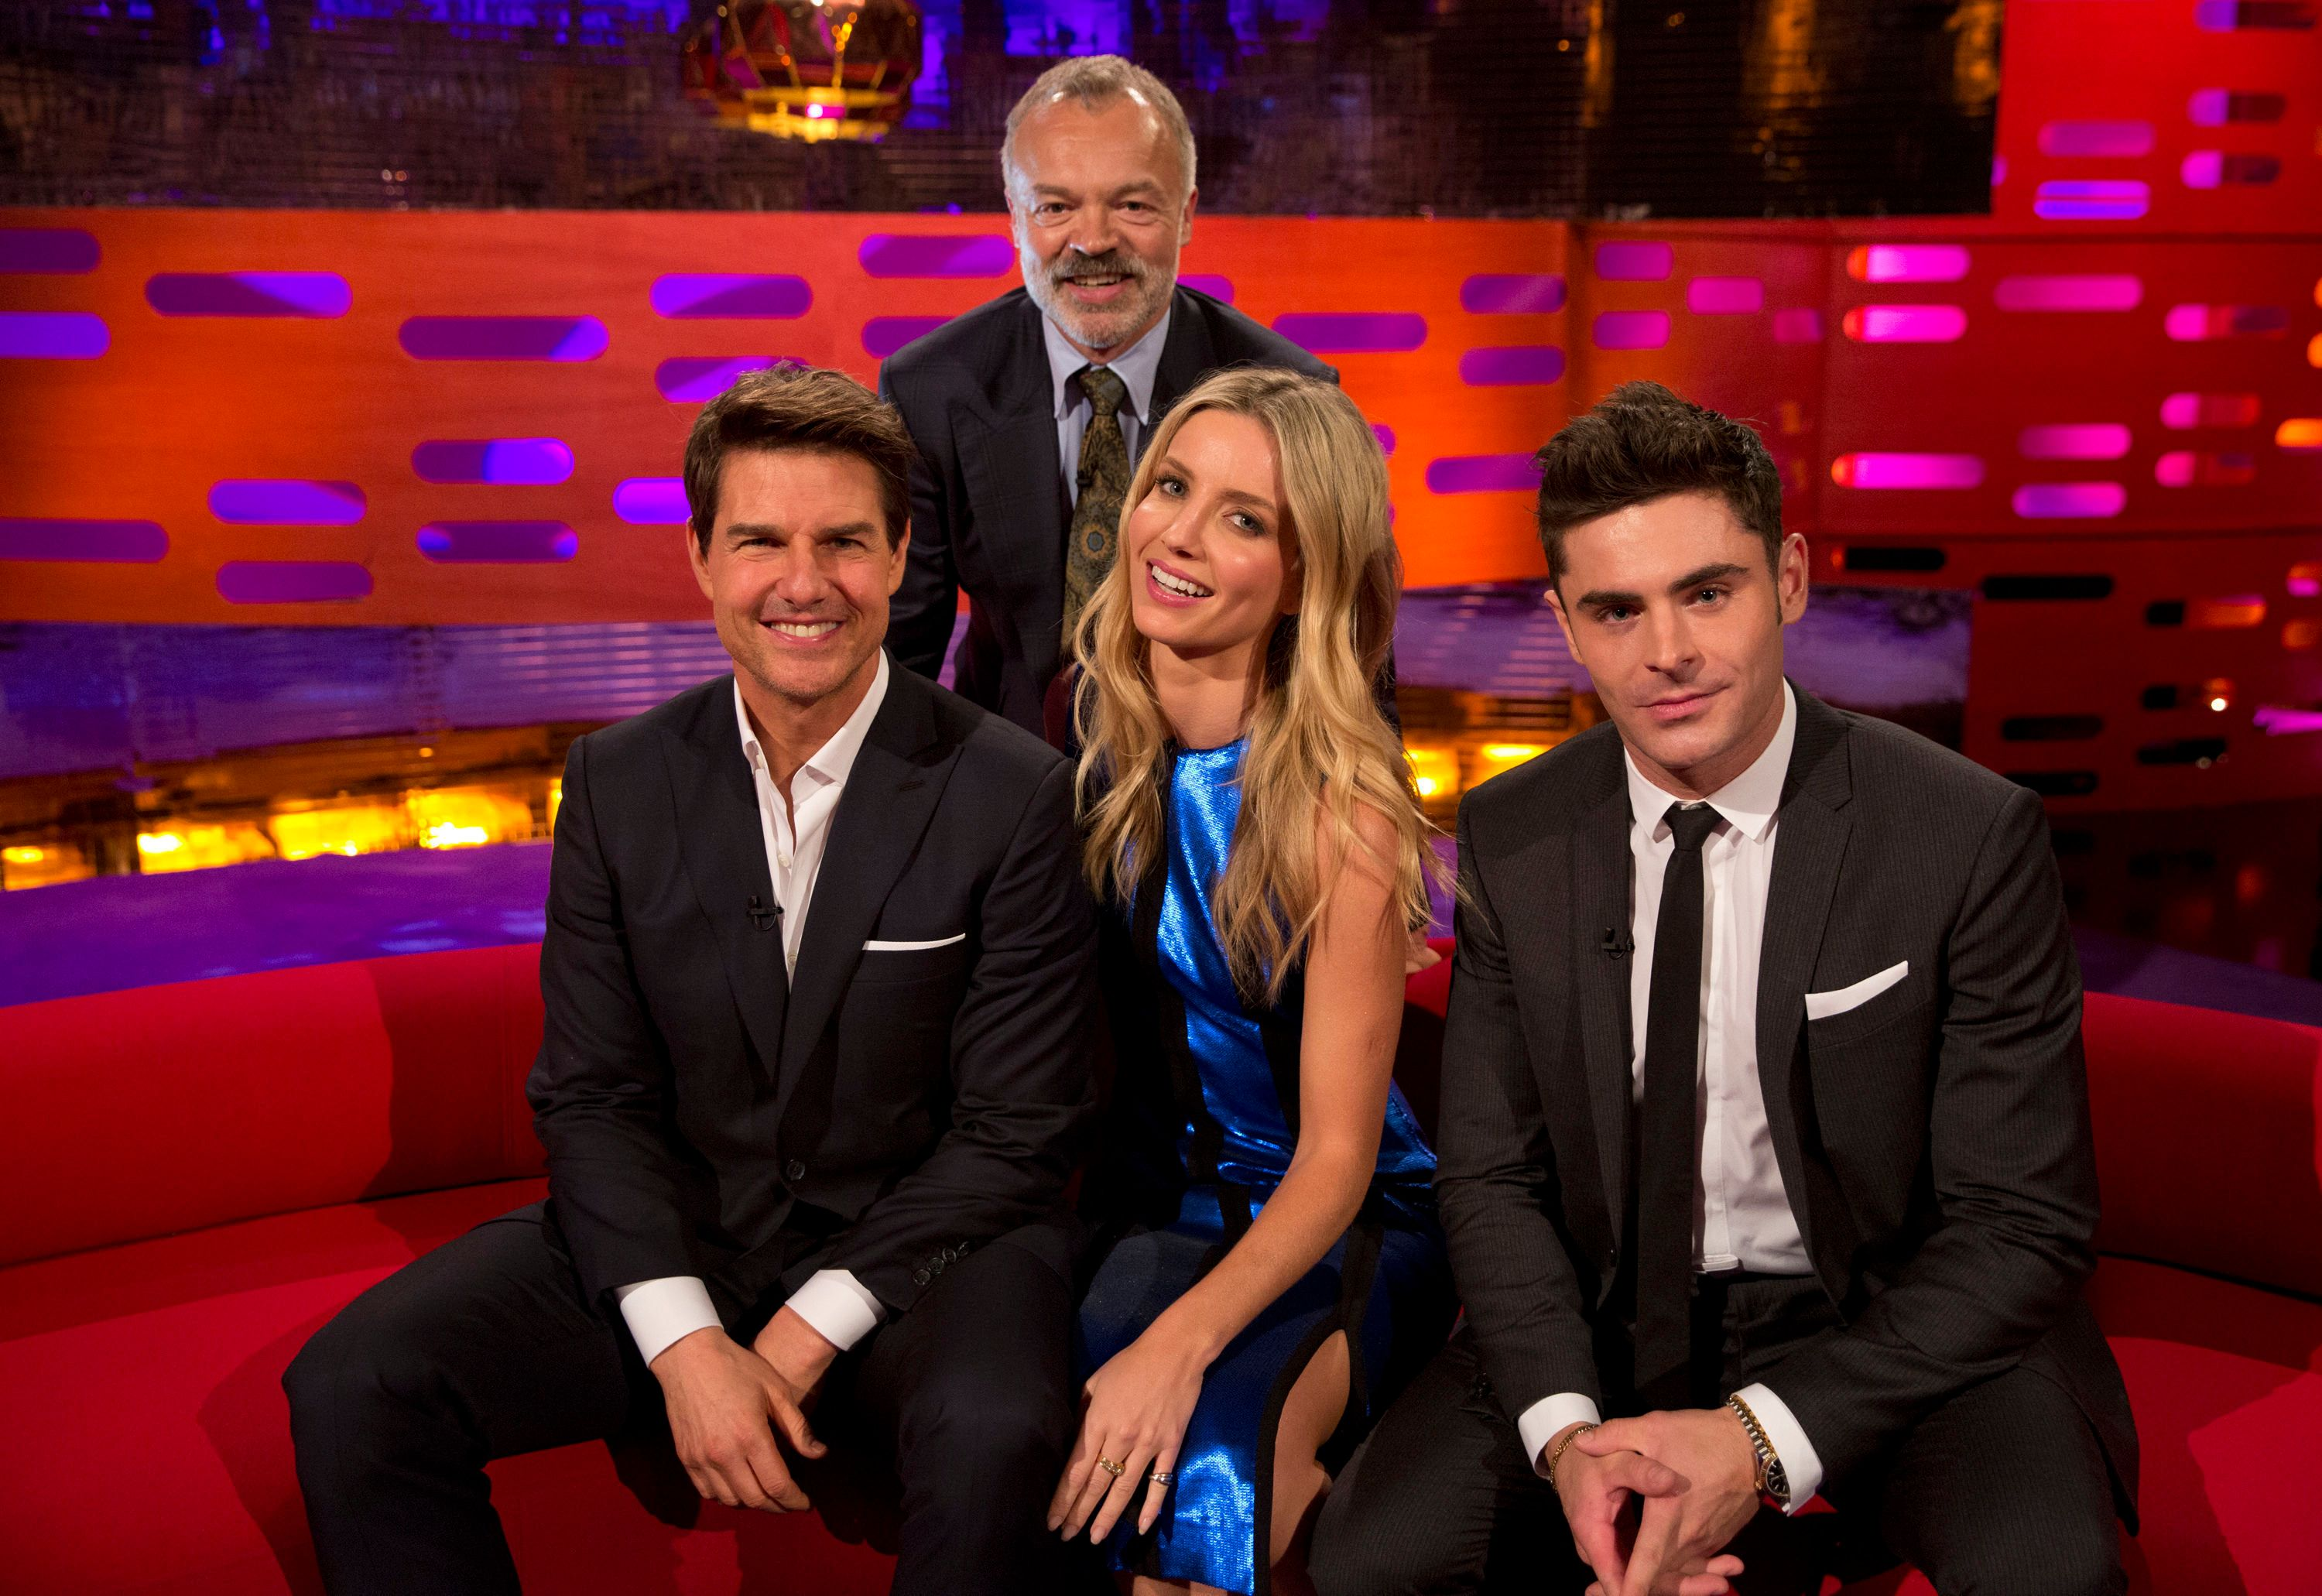 Graham Norton with his most recent guest list Tom Cruise, Annabelle Wallis and Zac